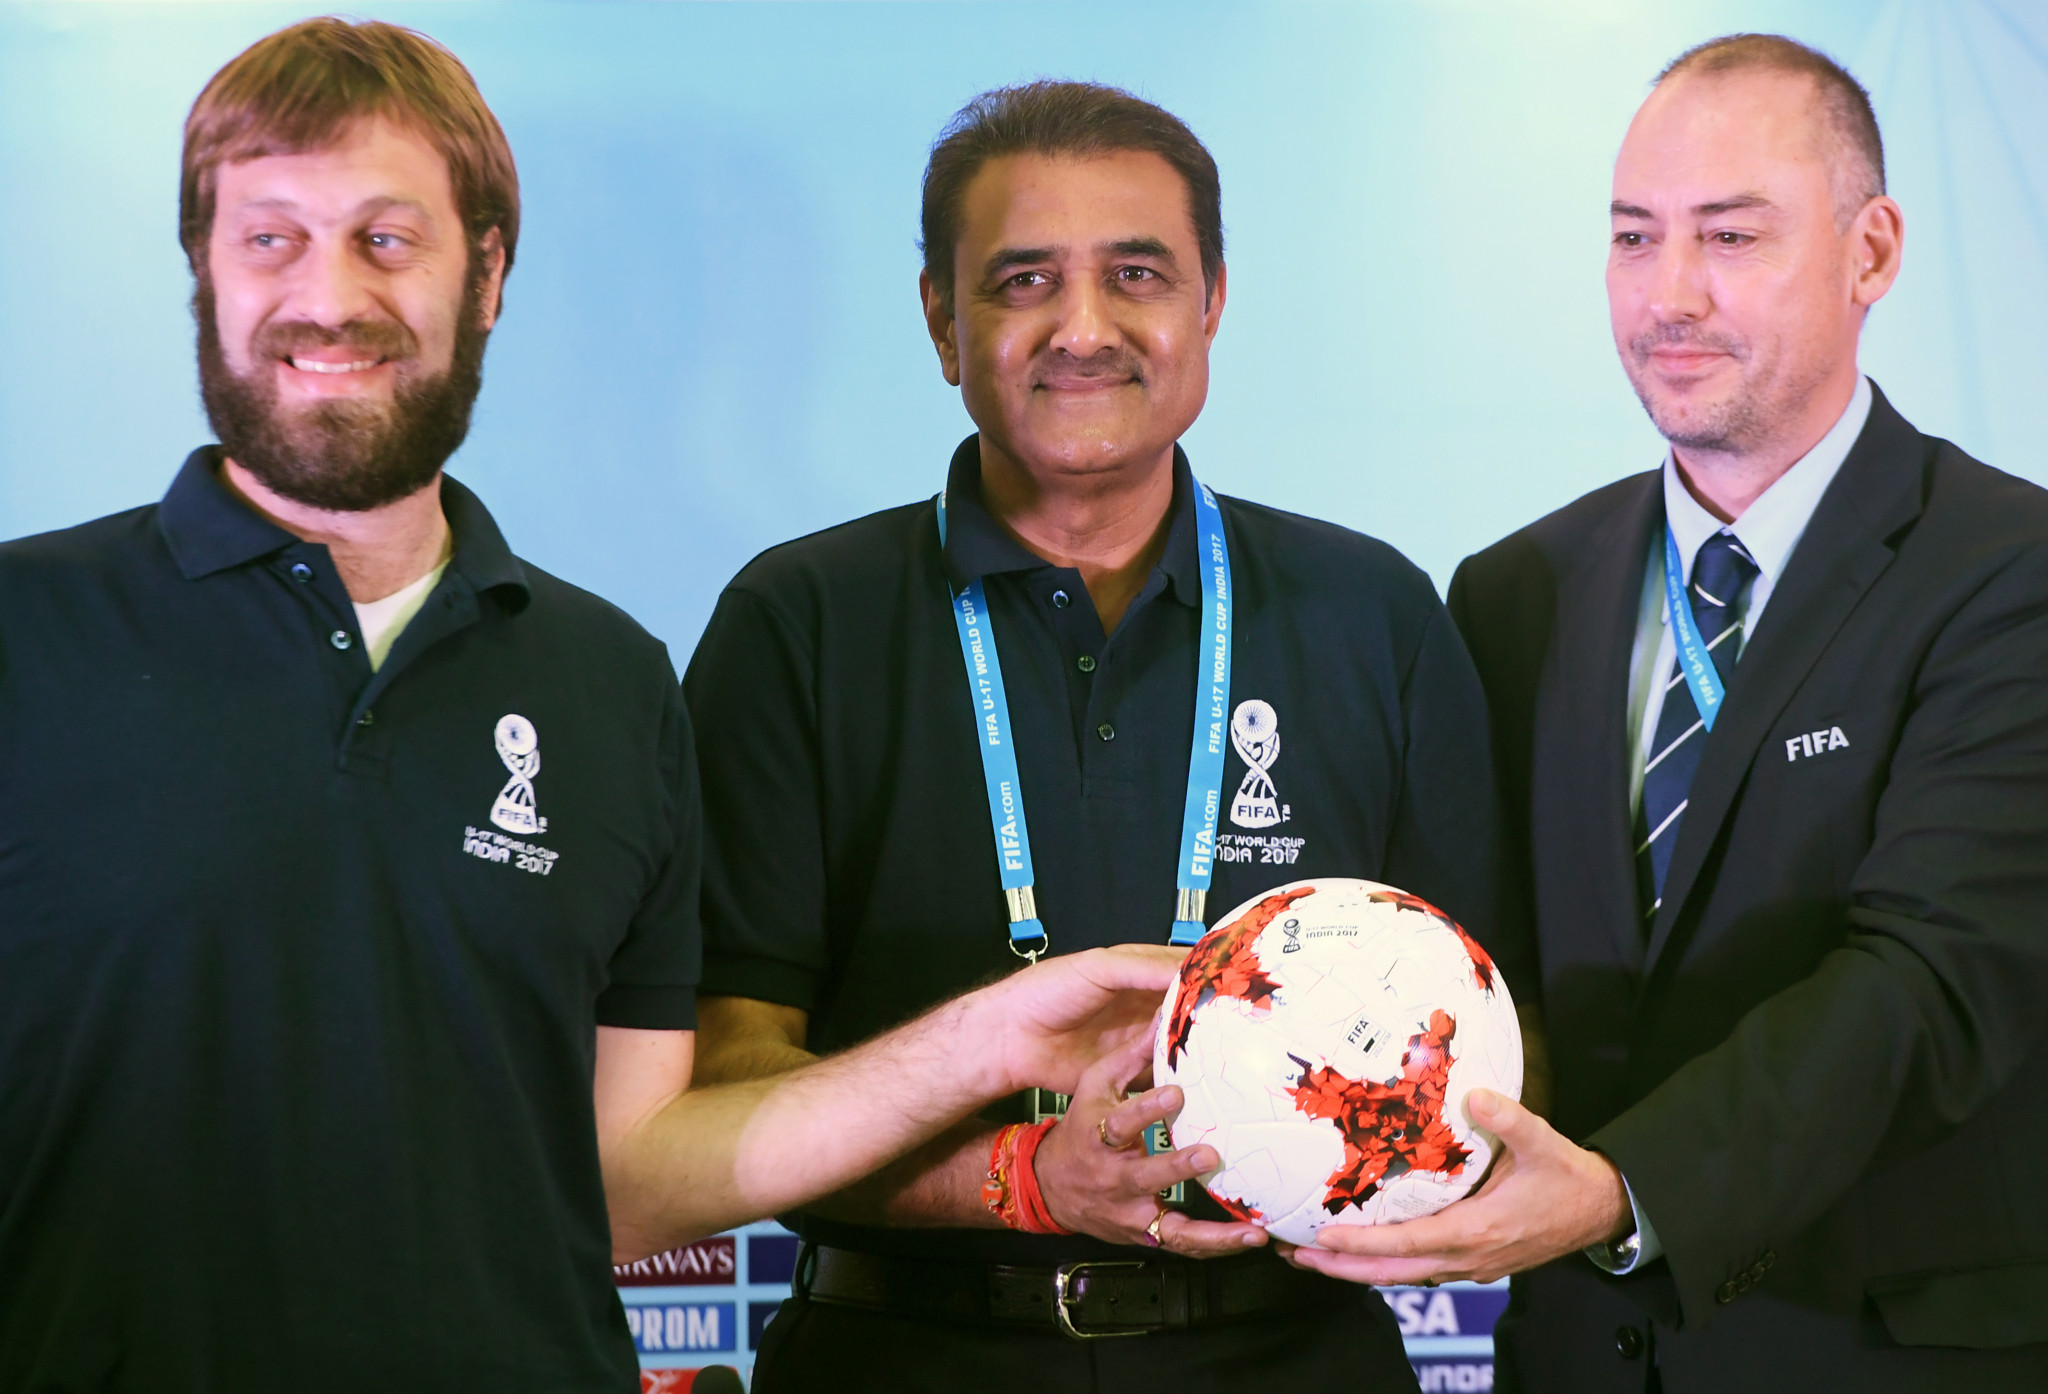 Organisers claim 2017 FIFA Under-17 World Cup set to be best attended edition as England and Spain prepare for final